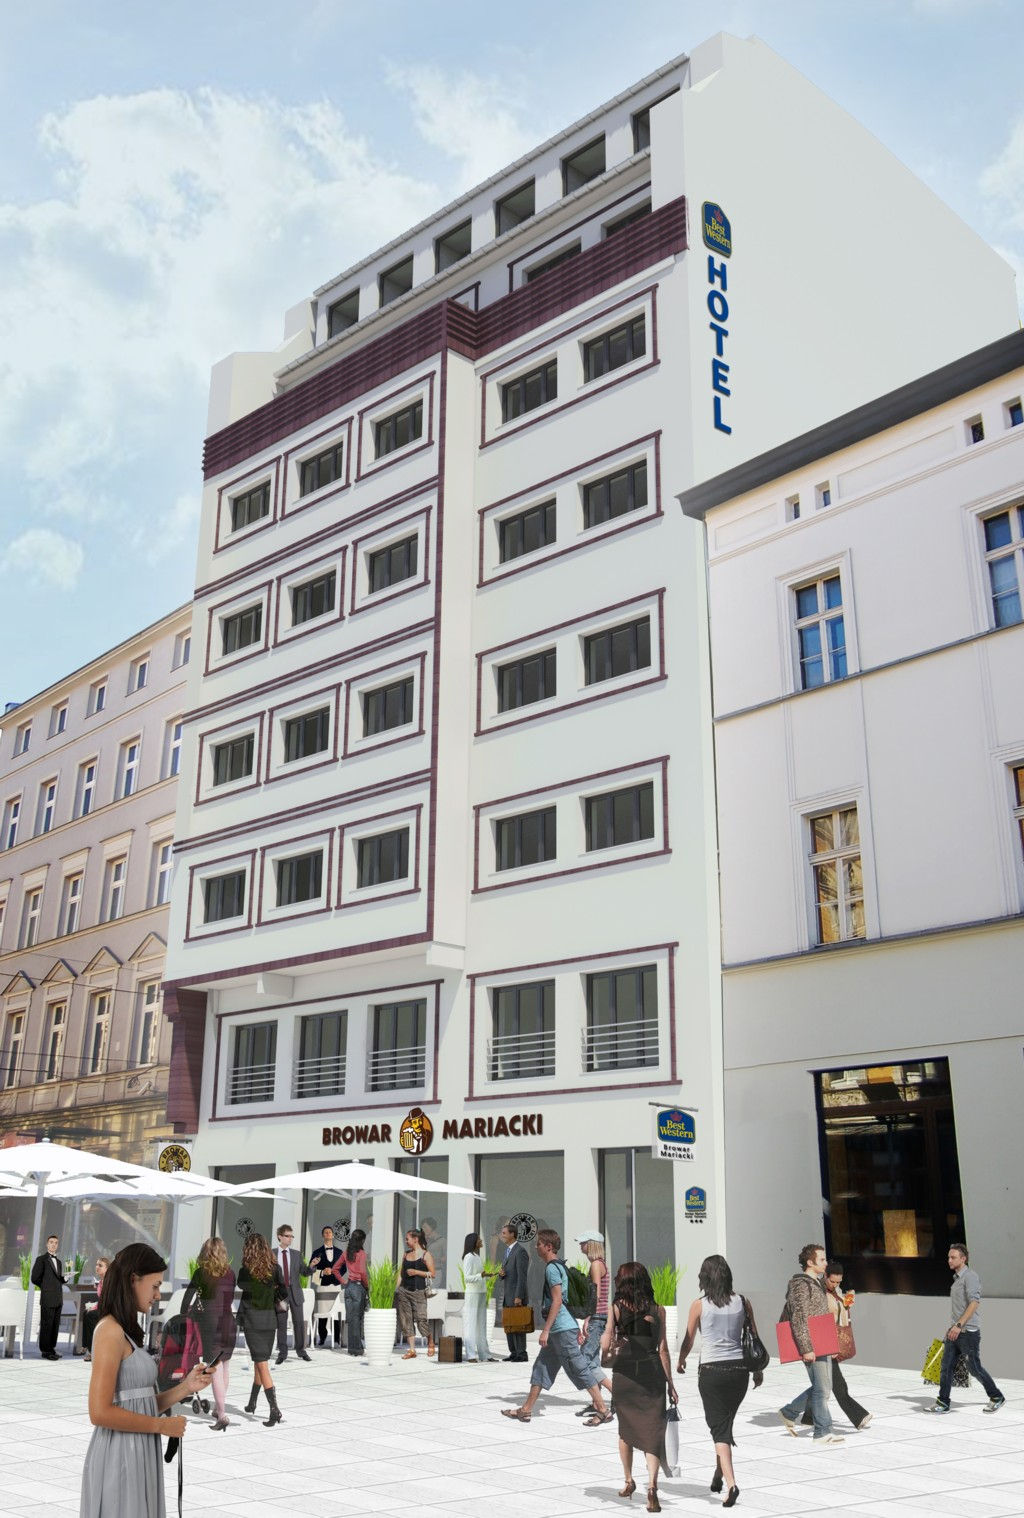 © GC Investment; Best Western Browar Mariacki